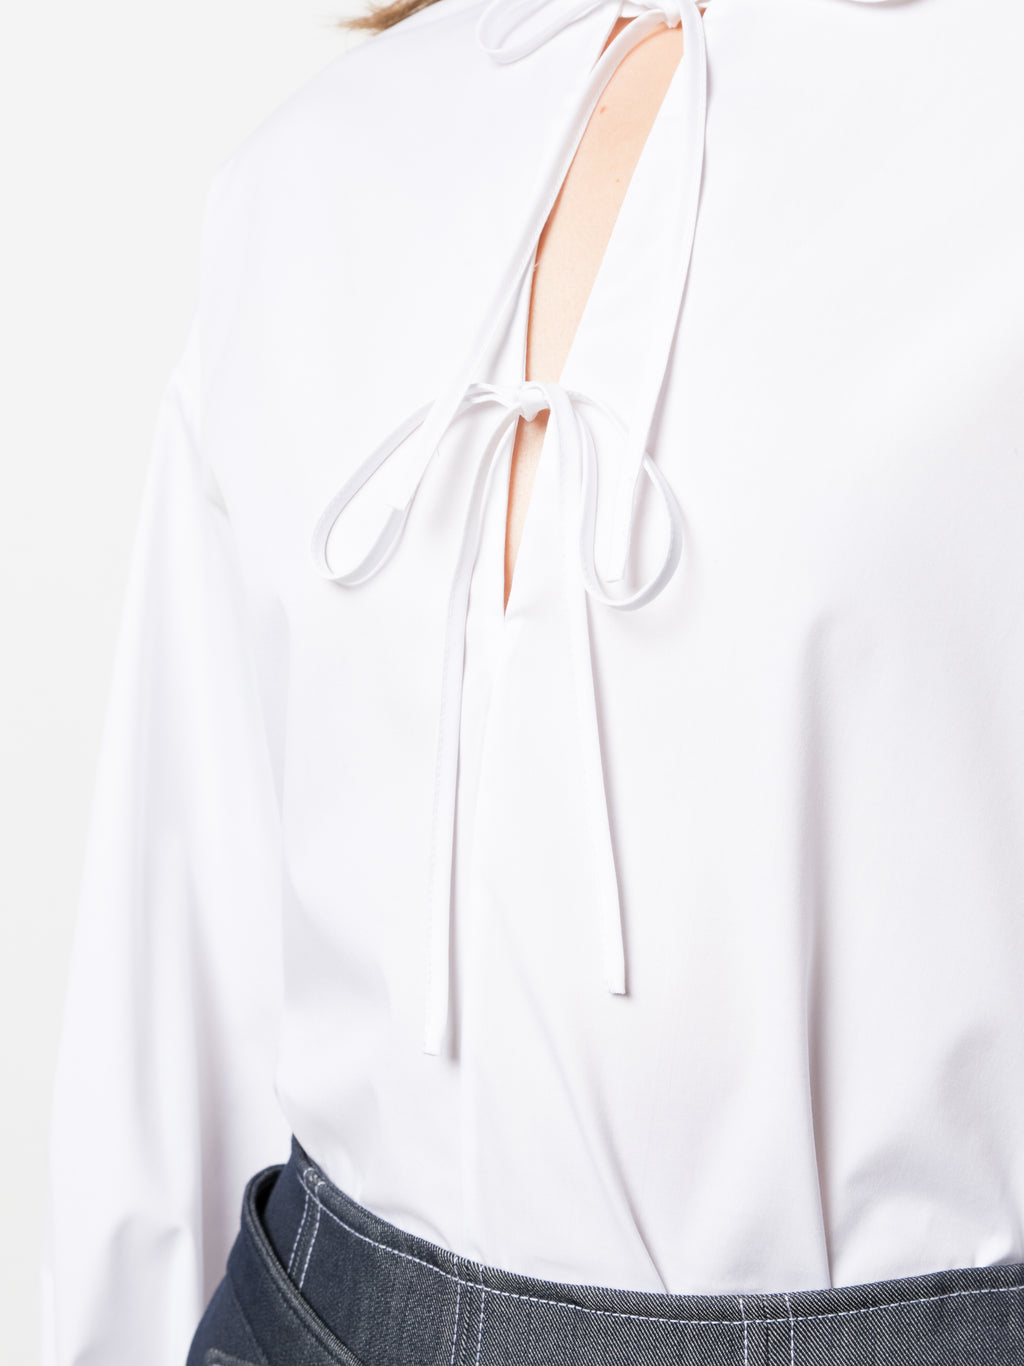 WHITE SHIRT WITH TIE DETAIL AT FRONT